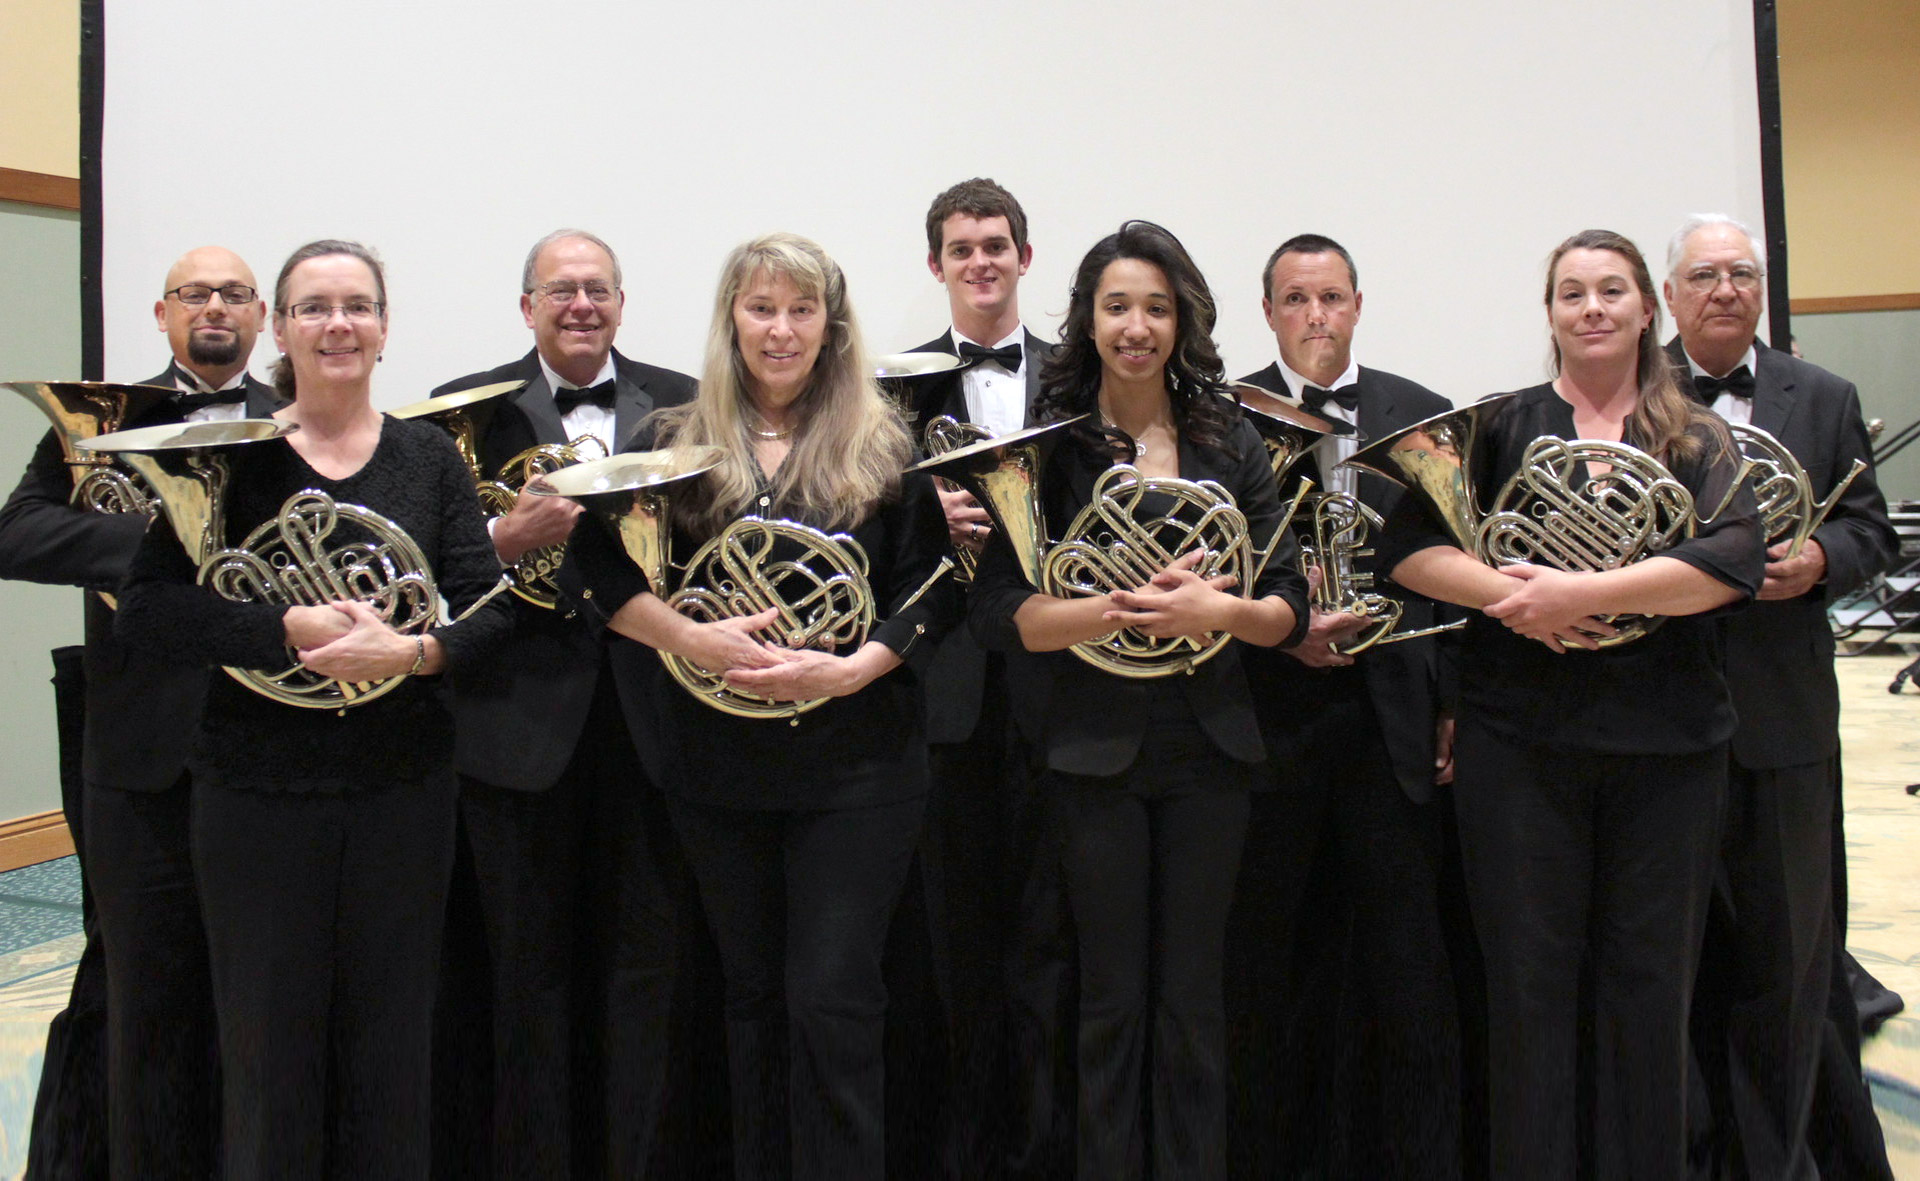 The Port St. Lucie Concert Band Musicians